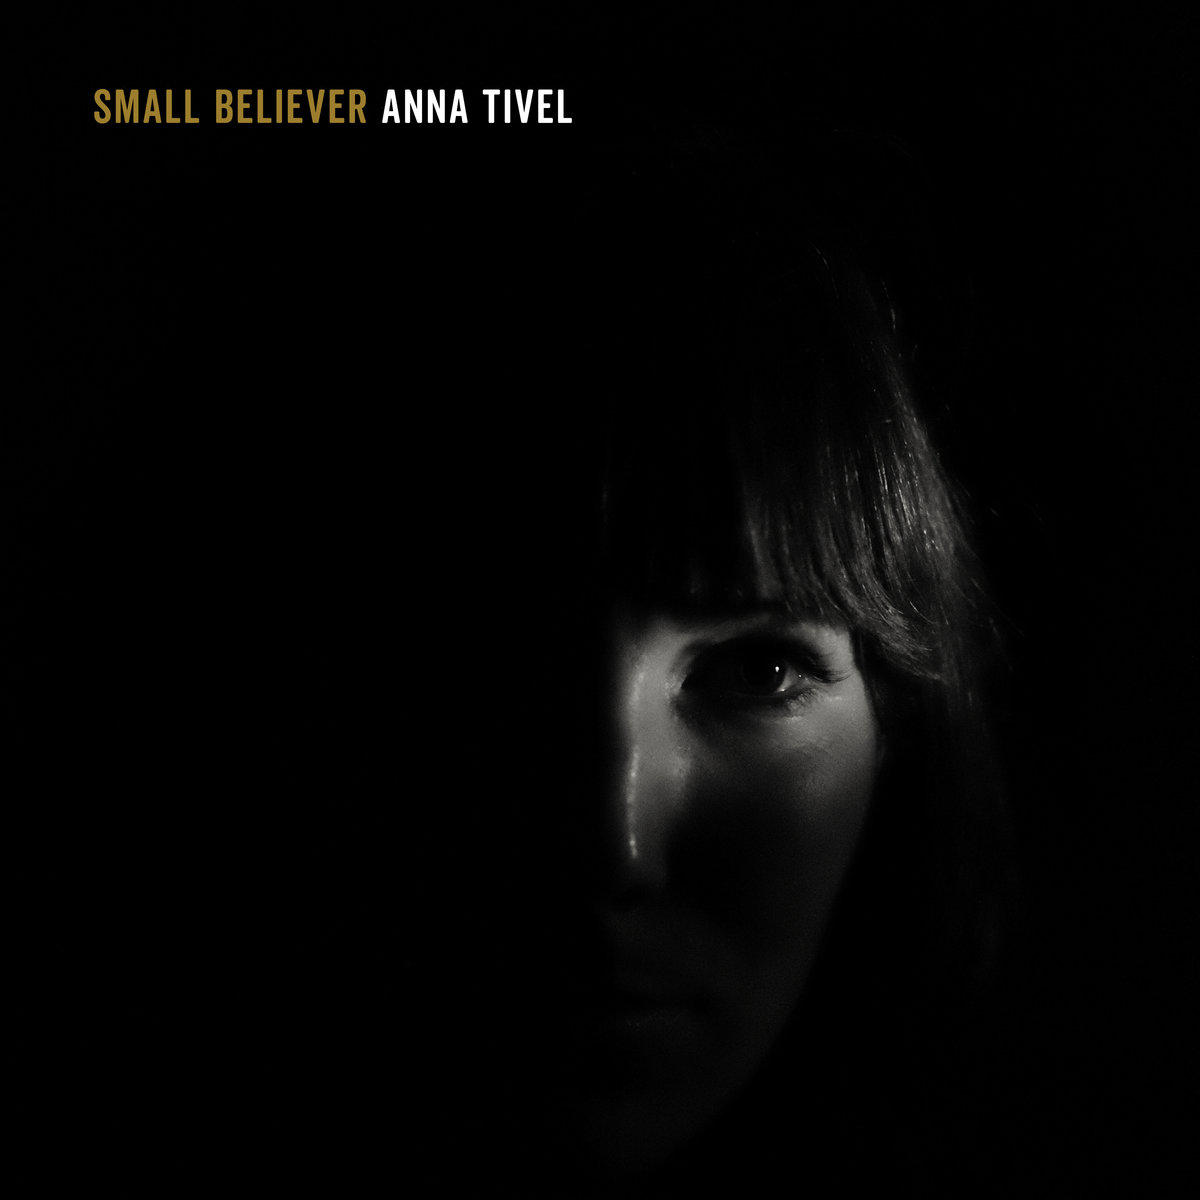 Small Believer